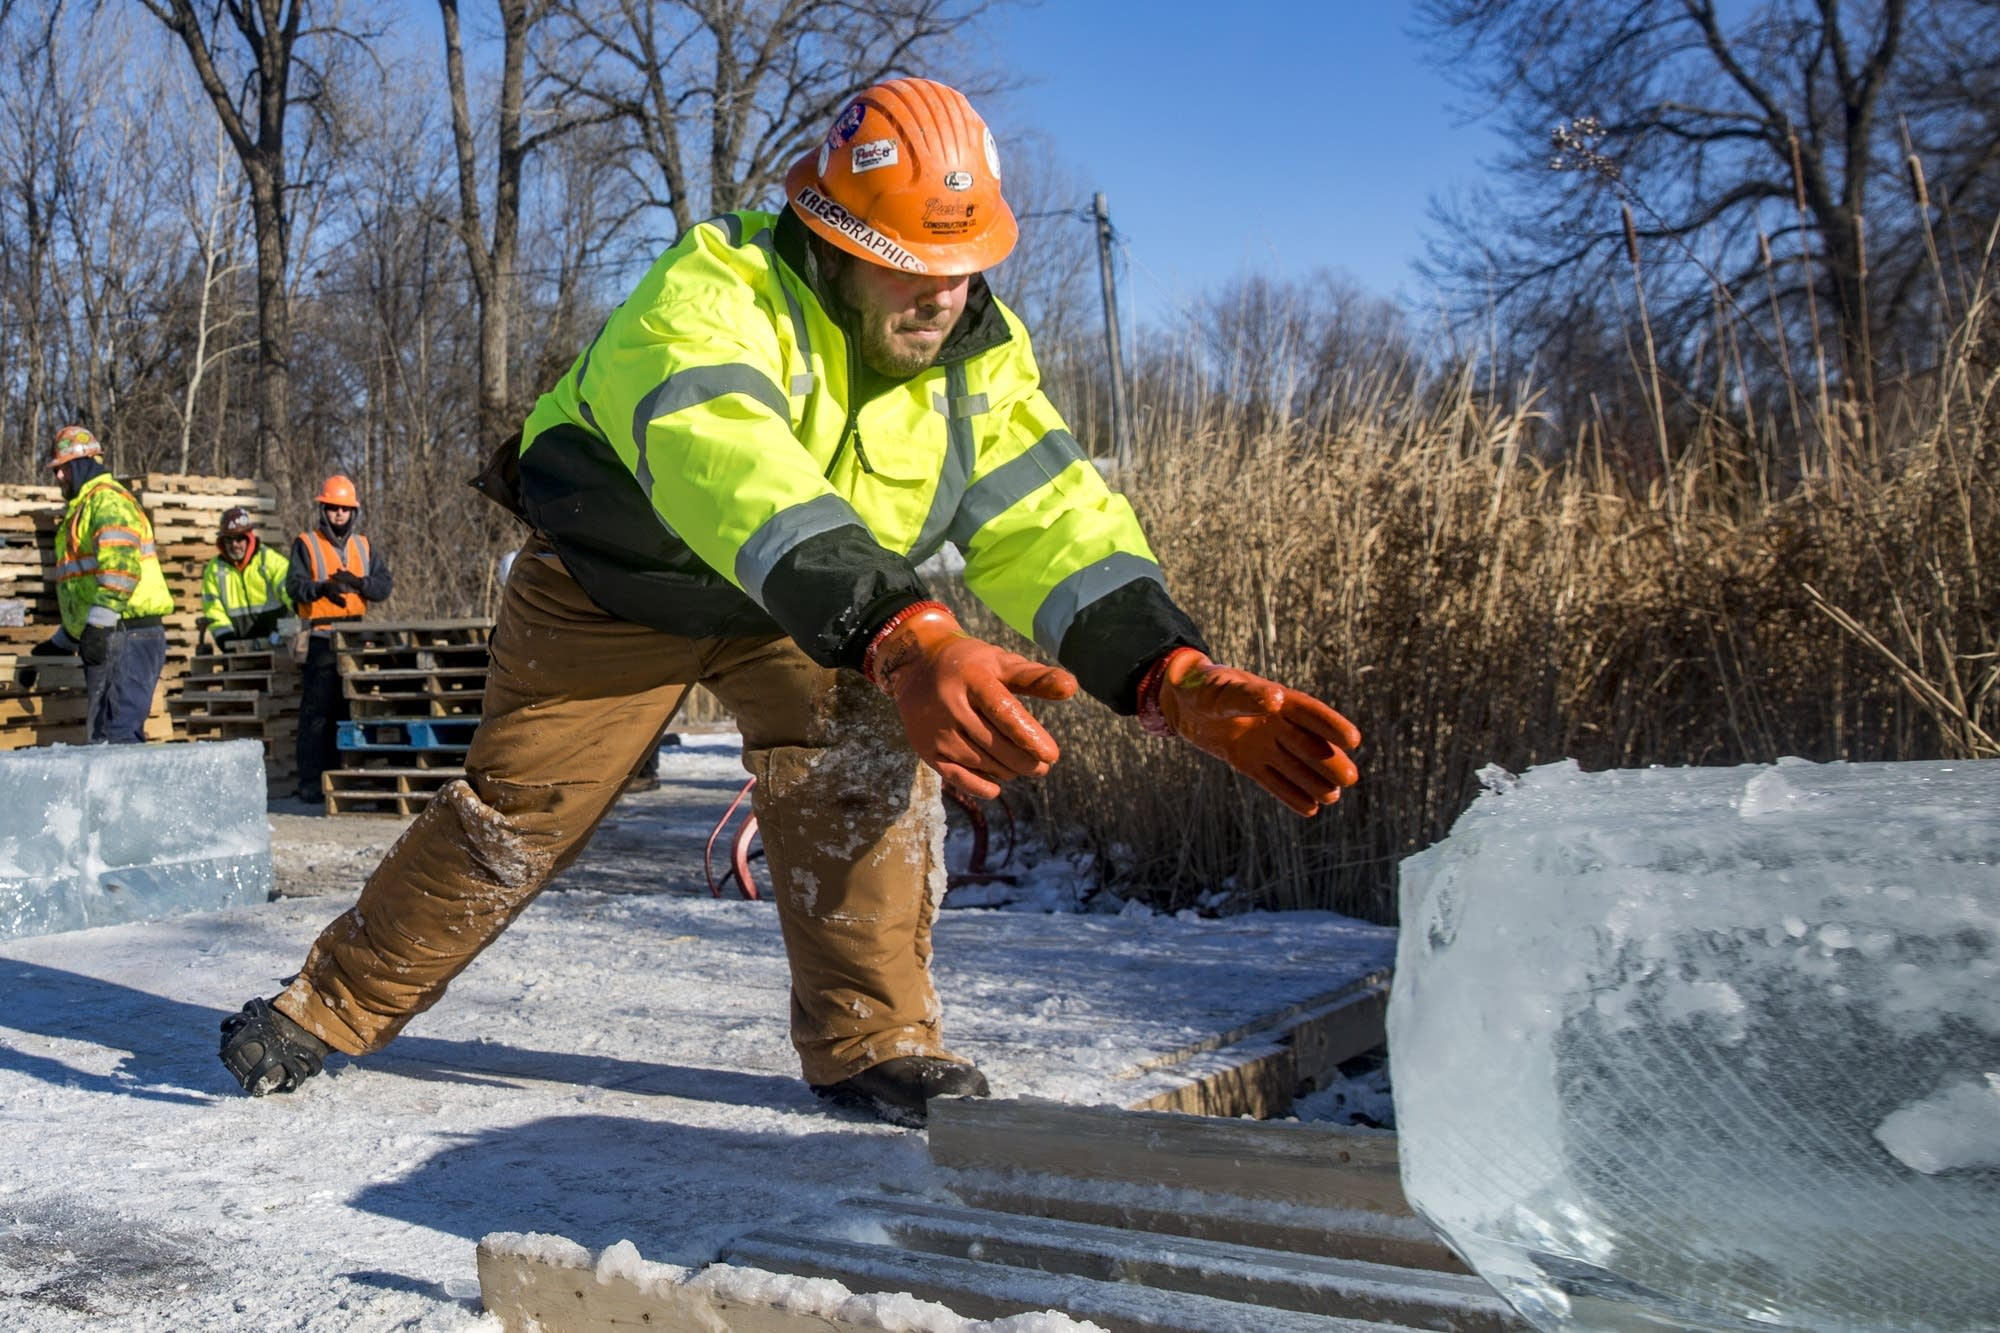 A Park Construction worker receives a block of ice.